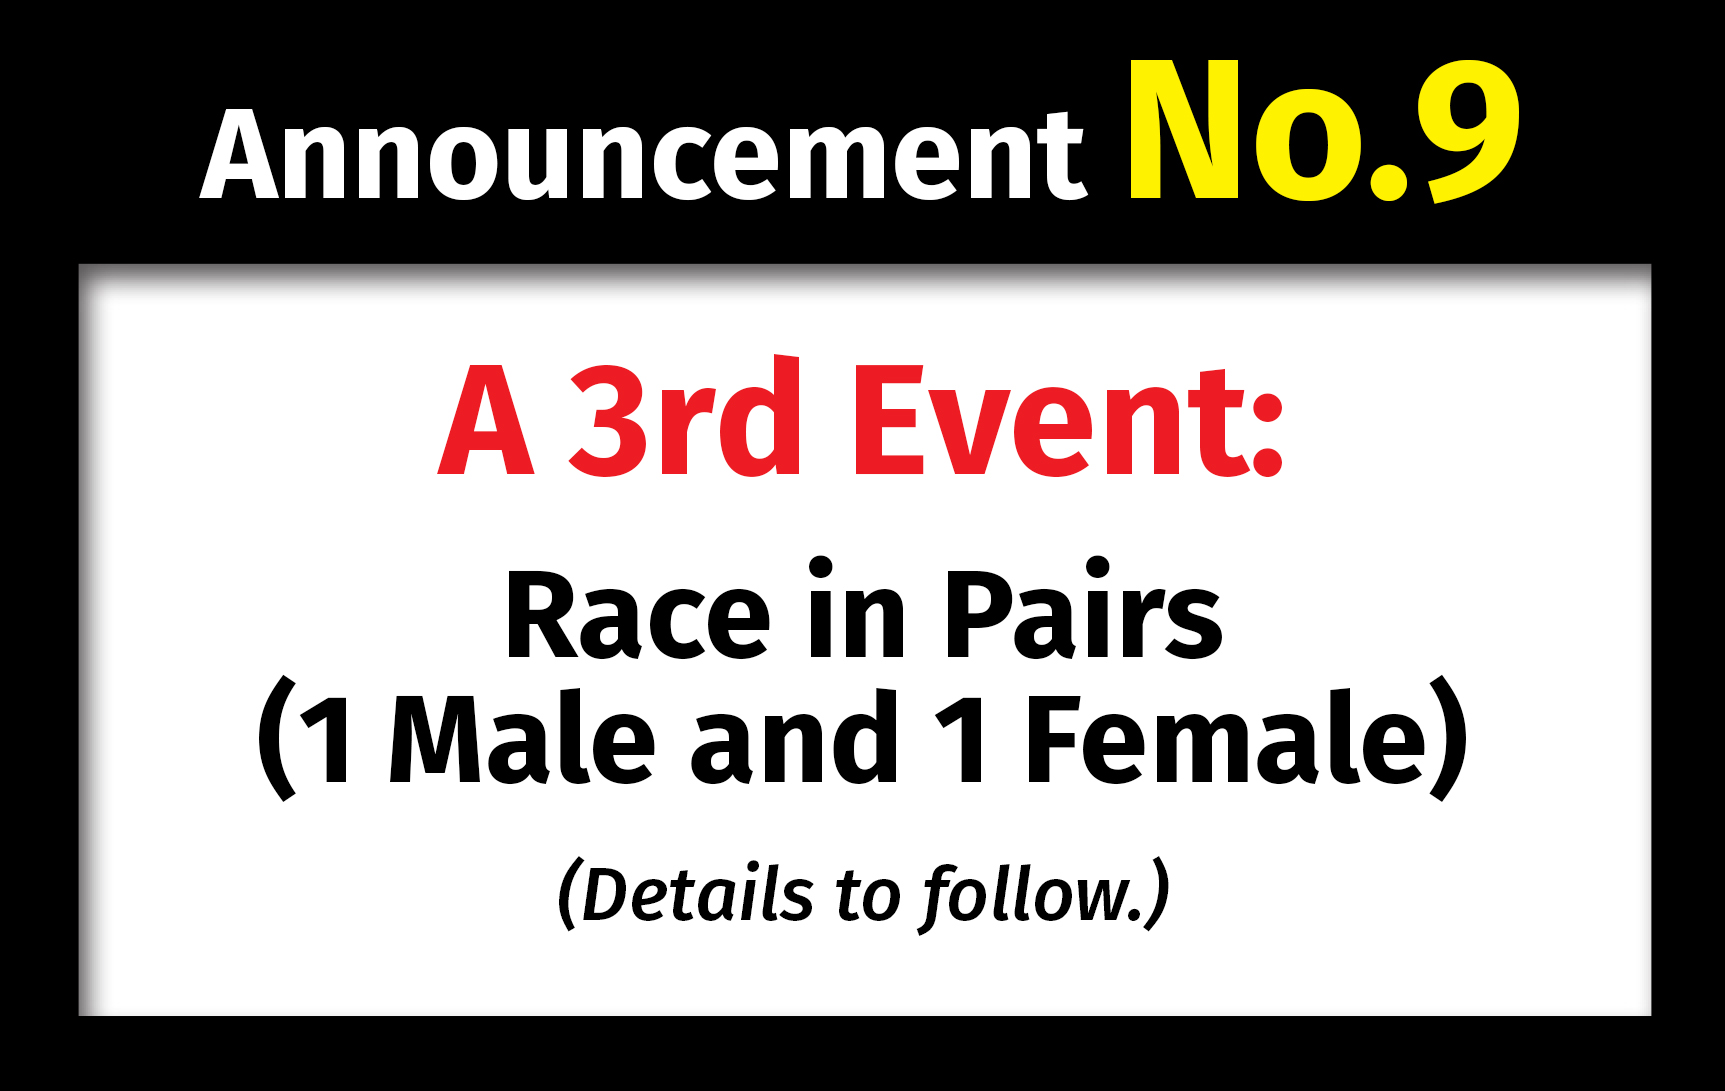 1st Asian OCR Championships. Announcement No.9